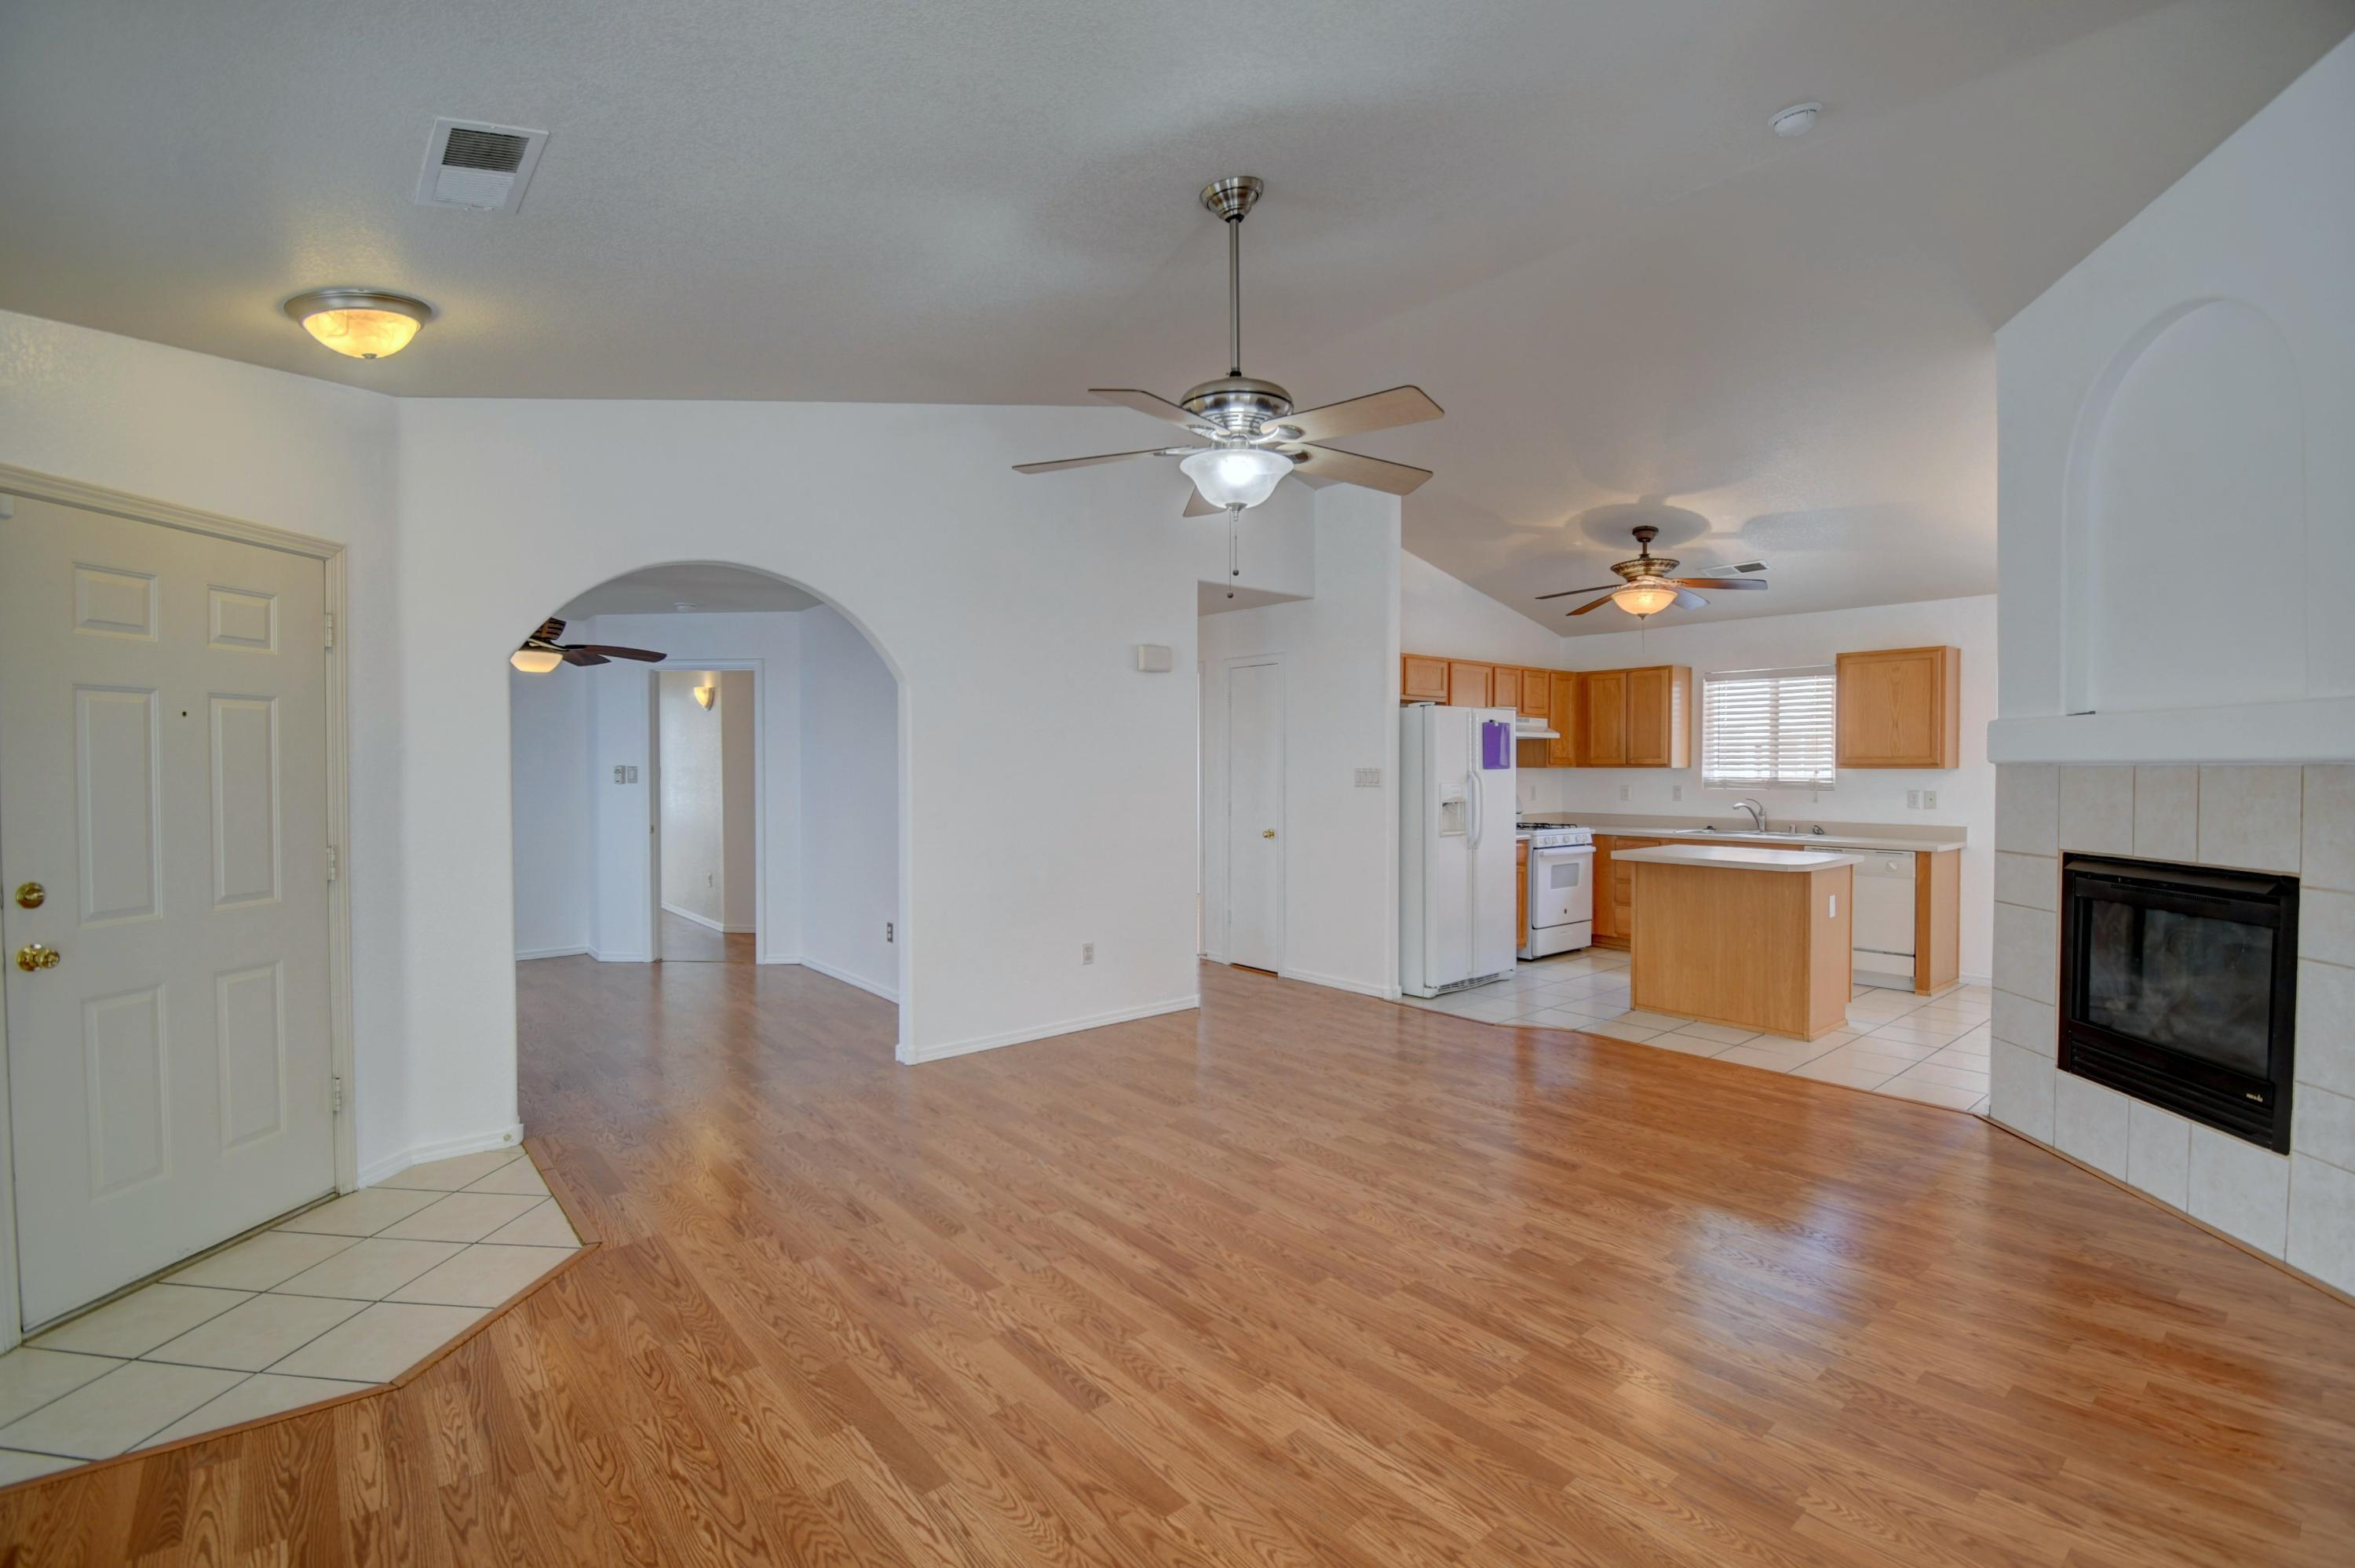 9716 PUCCINI Trail NW Property Photo - Albuquerque, NM real estate listing